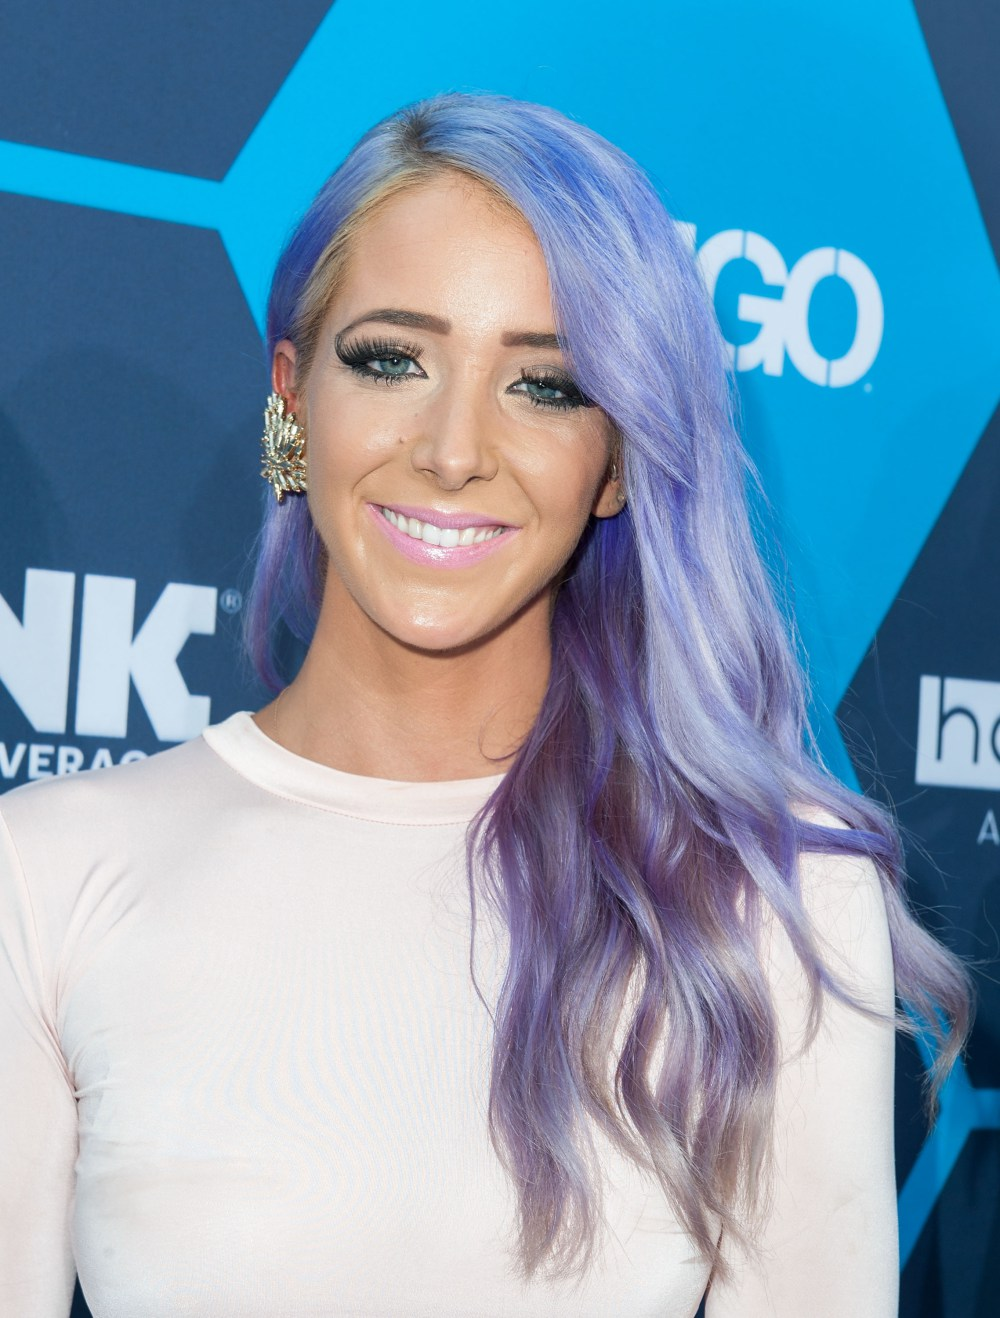 Web Video Star Jenna Marbles - age: 34